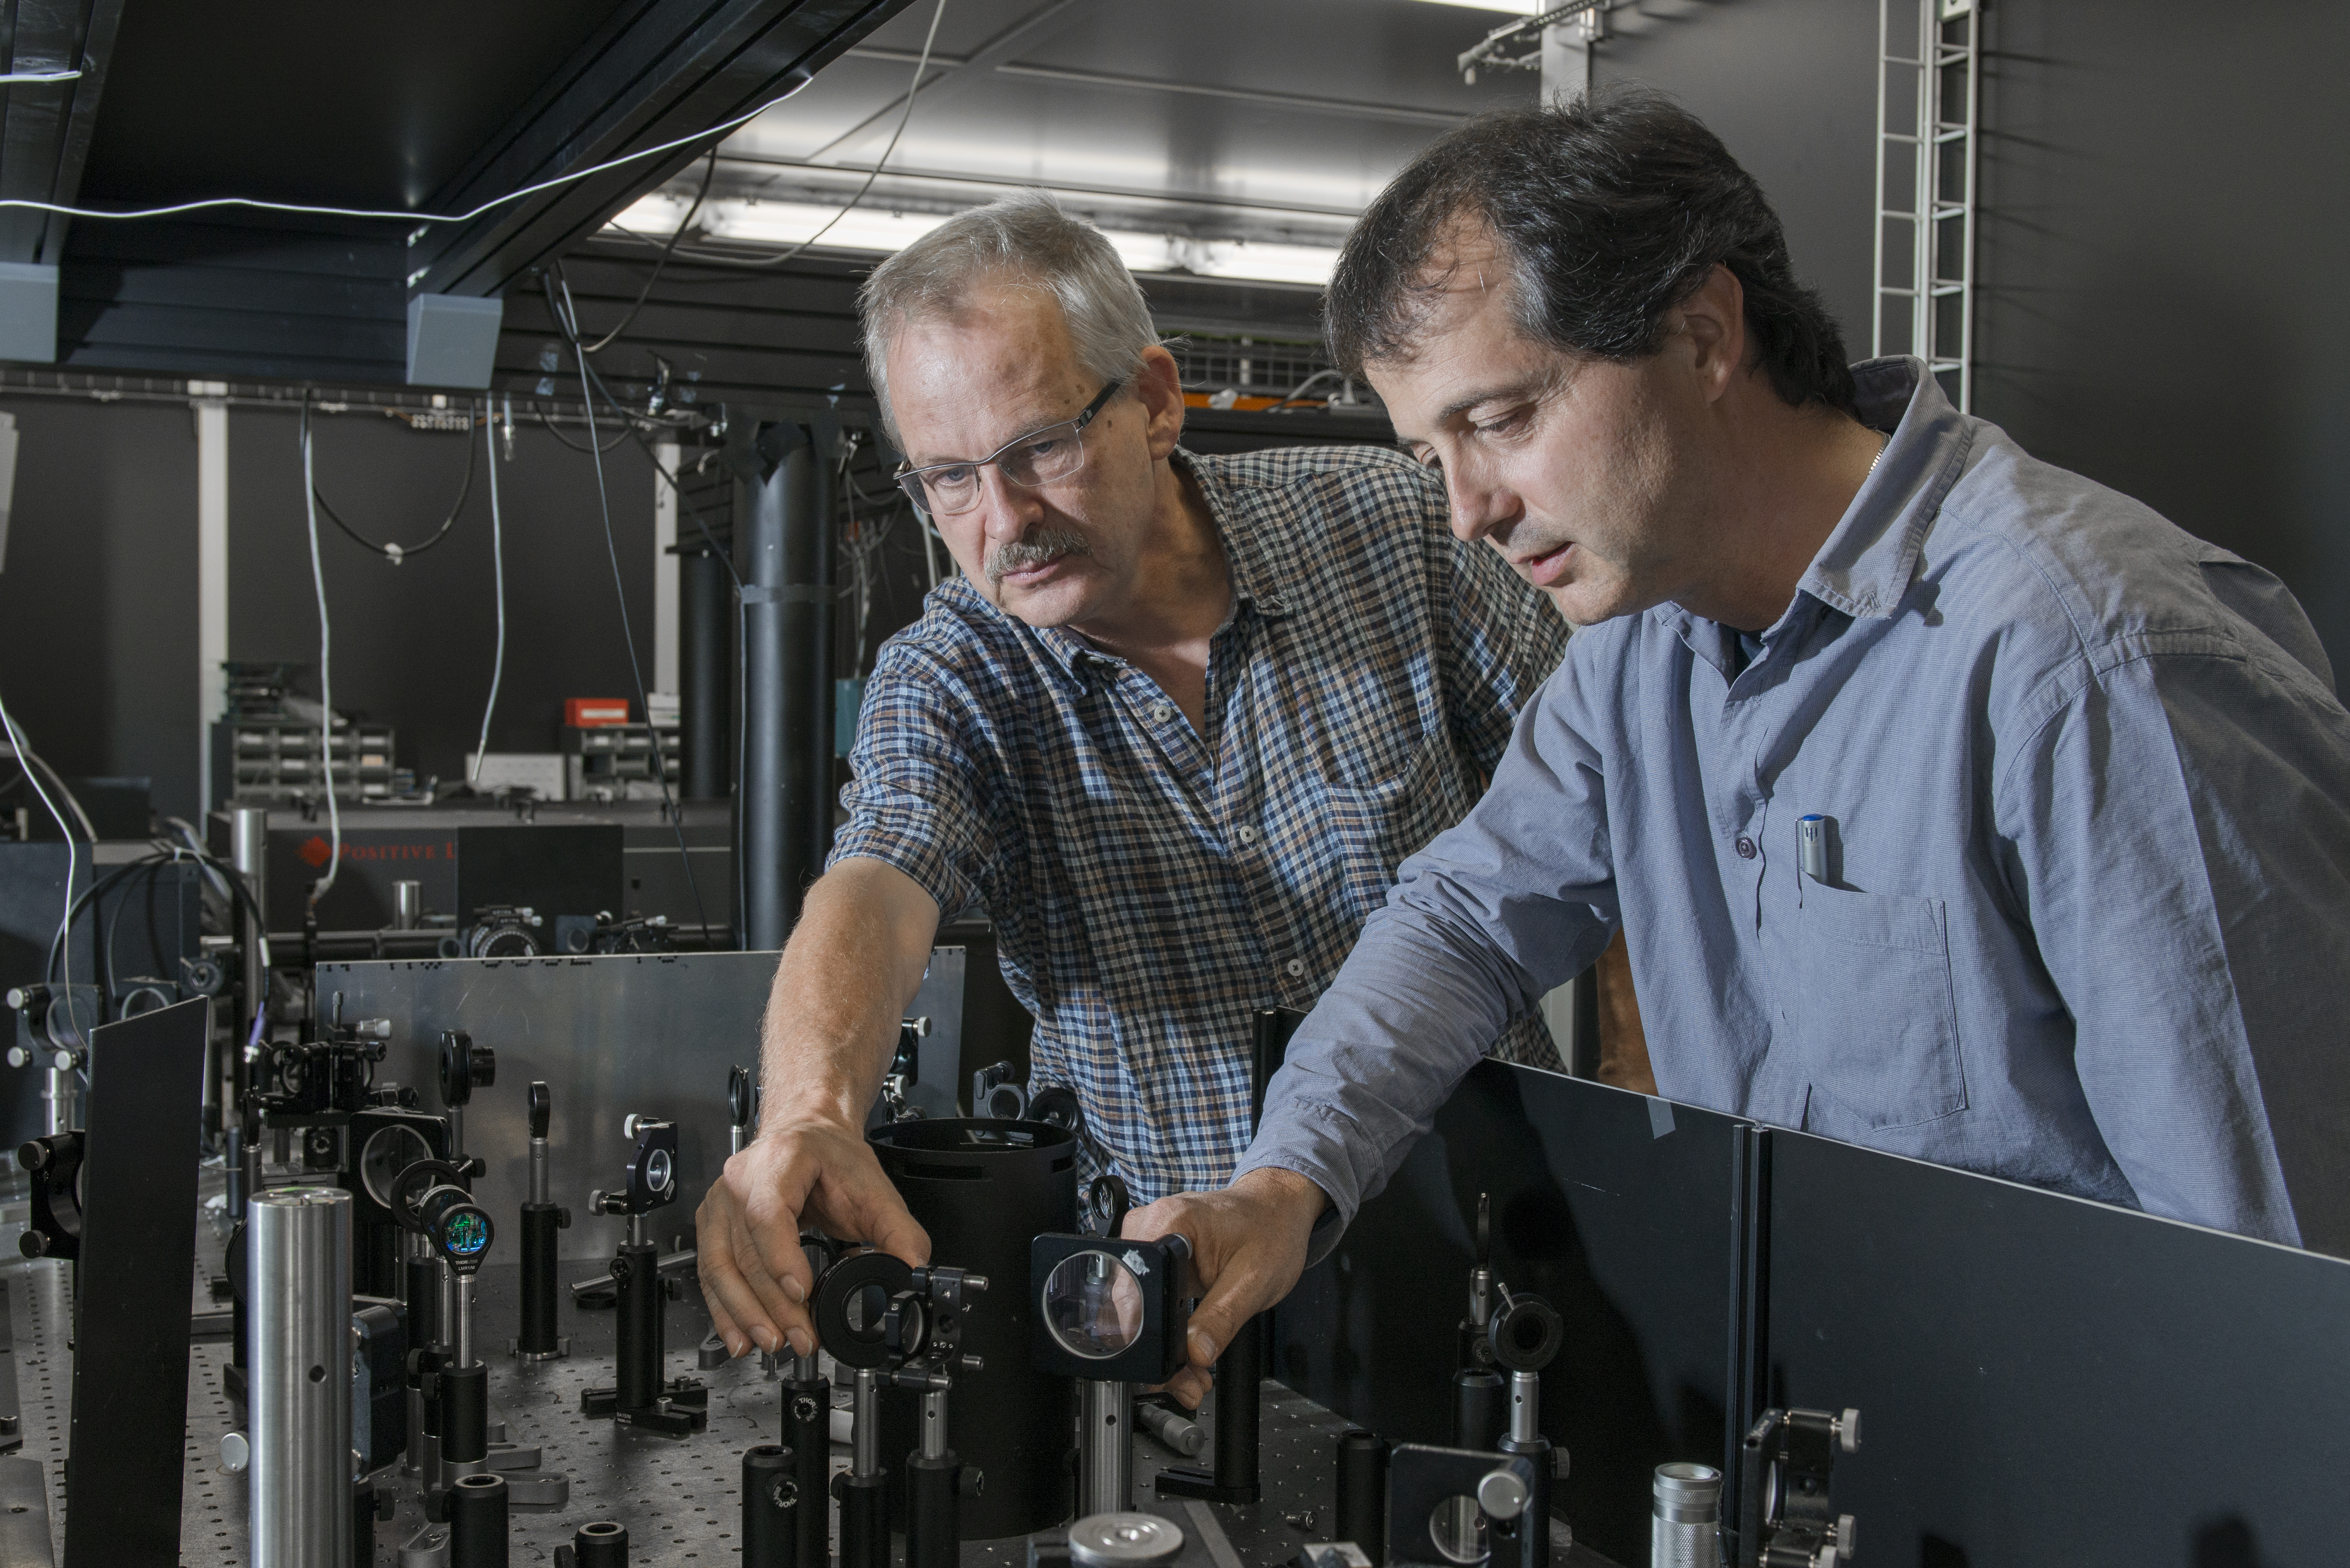 Short x-ray probes are already being tested today in the 'laser smelting works' of the FEMTO experiment at PSI. In the photo the researchers Paul Beaud (left) and Urs Staub. Photo: Paul Scherrer Institute/Mahir Dzambegovic